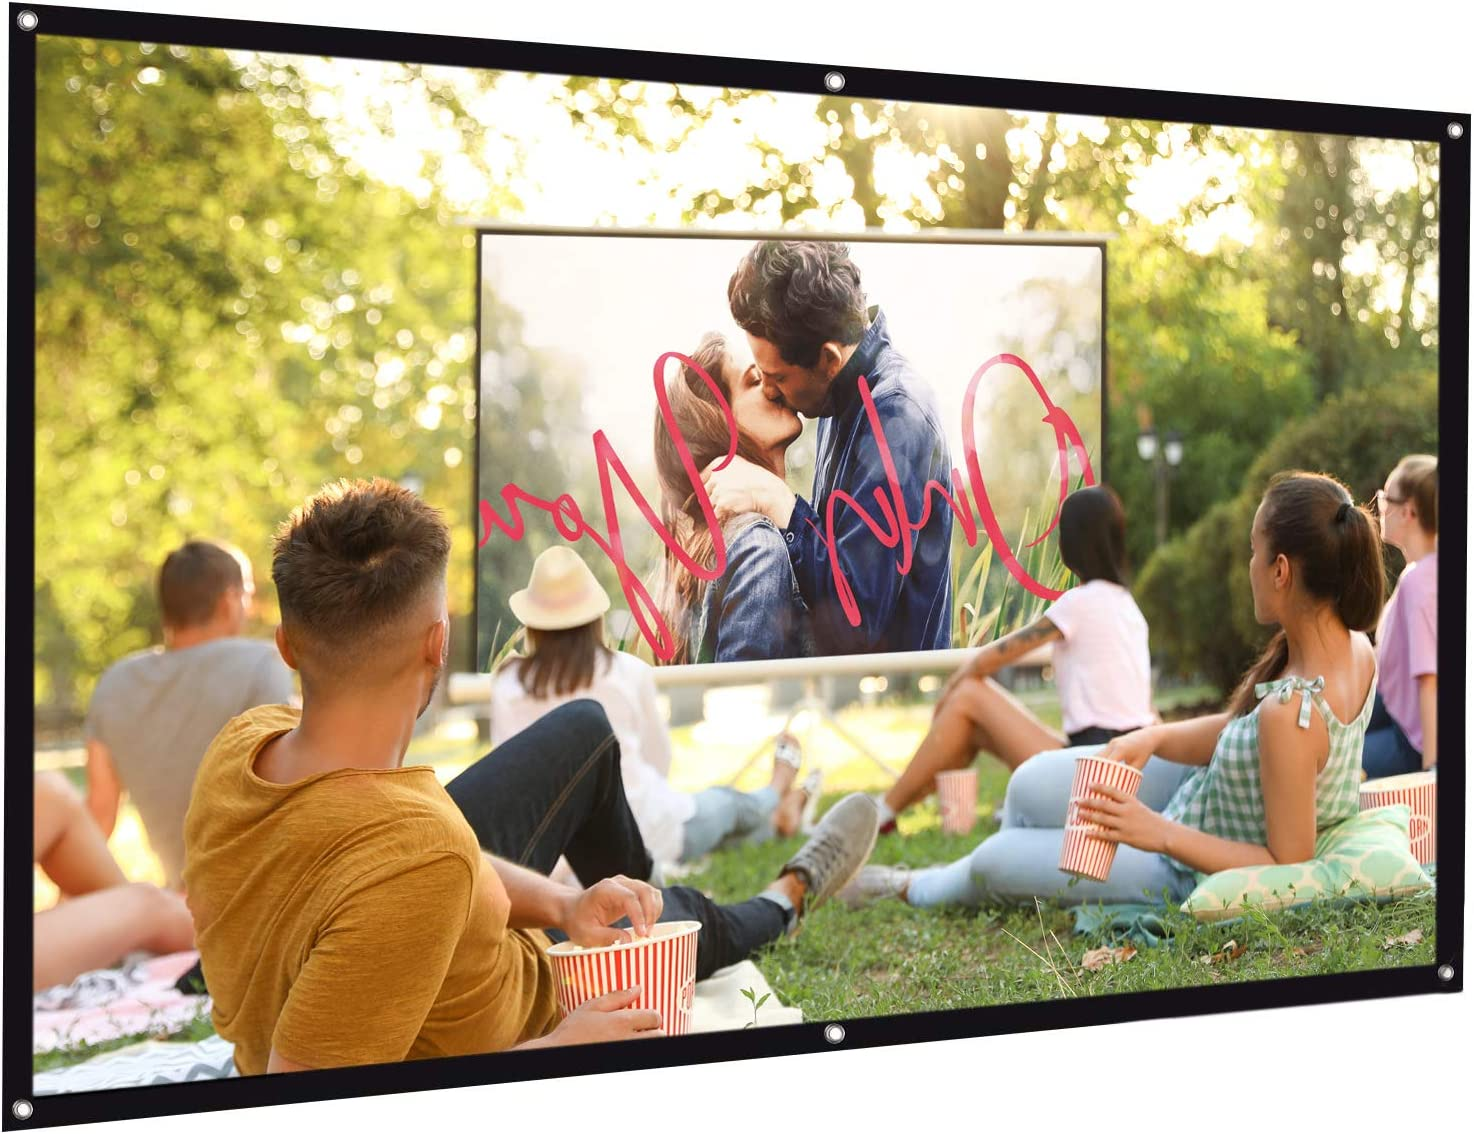 Bomaker 100 inch Projection Screen 16:9 HD Foldable Anti-Crease Portable Washable Projector Screen, Ideal Choice for Home Theater Outdoor Indoor Support Double Sided Projection